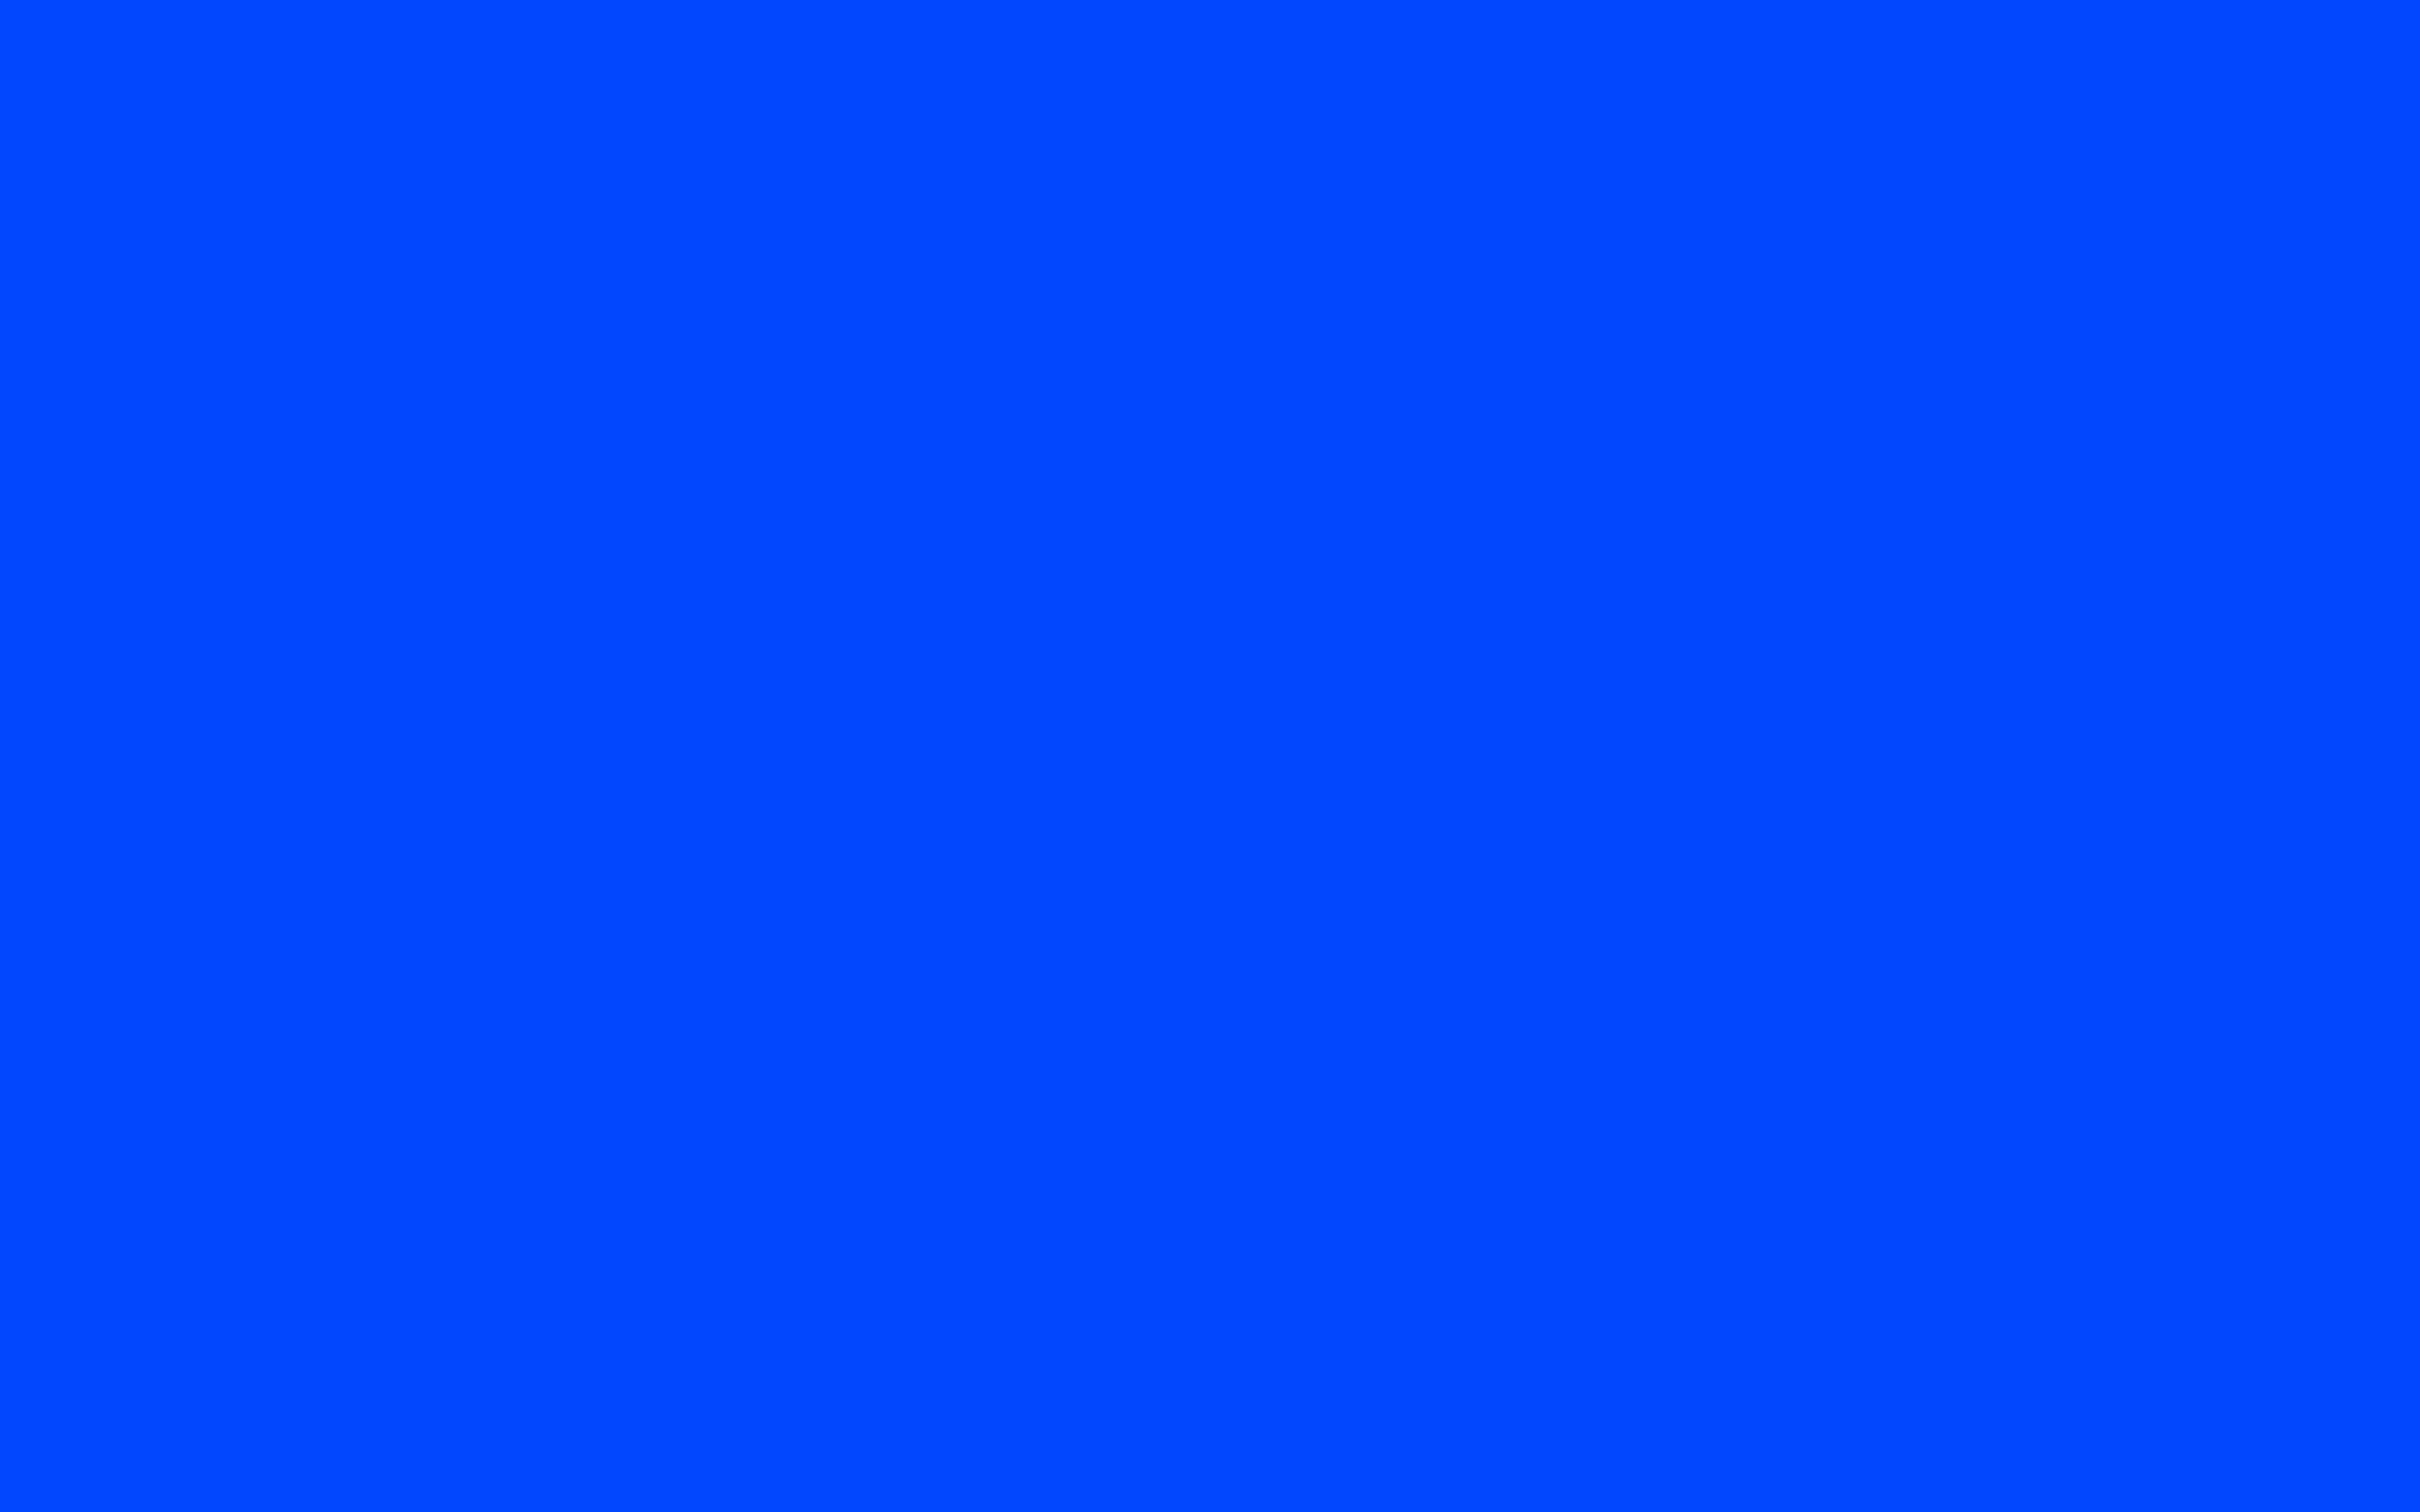 Solid blue color background hd images for Plain blue wallpaper for walls